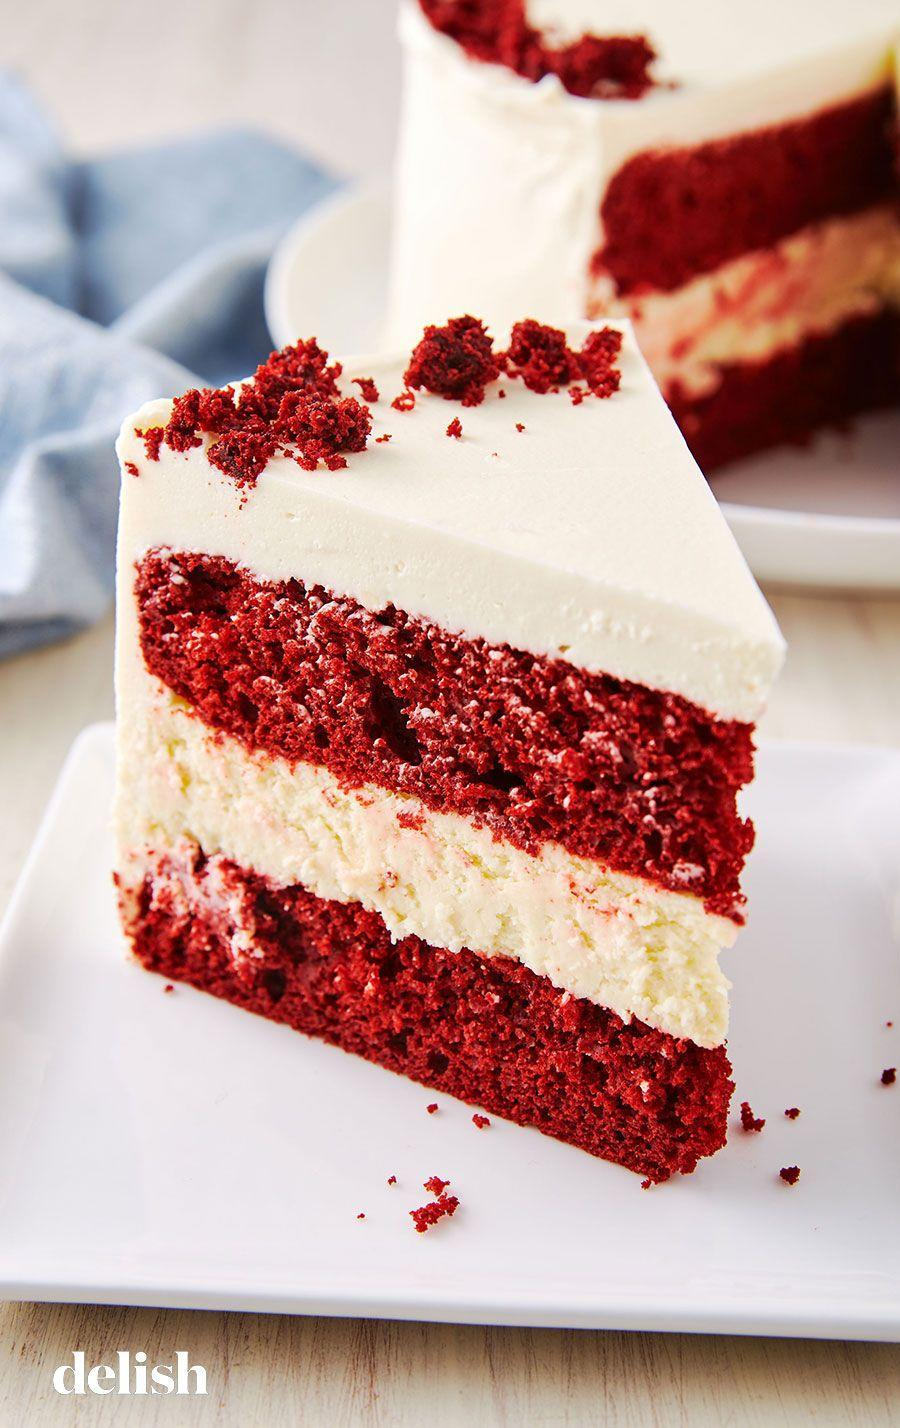 """<p>Talk about a stunner. This layer cake will sleigh your holiday dessert table.</p><p>Get the recipe from <a href=""""https://www.delish.com/cooking/recipe-ideas/recipes/a50687/red-velvet-cheesecake-cake-recipe/"""" rel=""""nofollow noopener"""" target=""""_blank"""" data-ylk=""""slk:Delish"""" class=""""link rapid-noclick-resp"""">Delish</a>.</p>"""